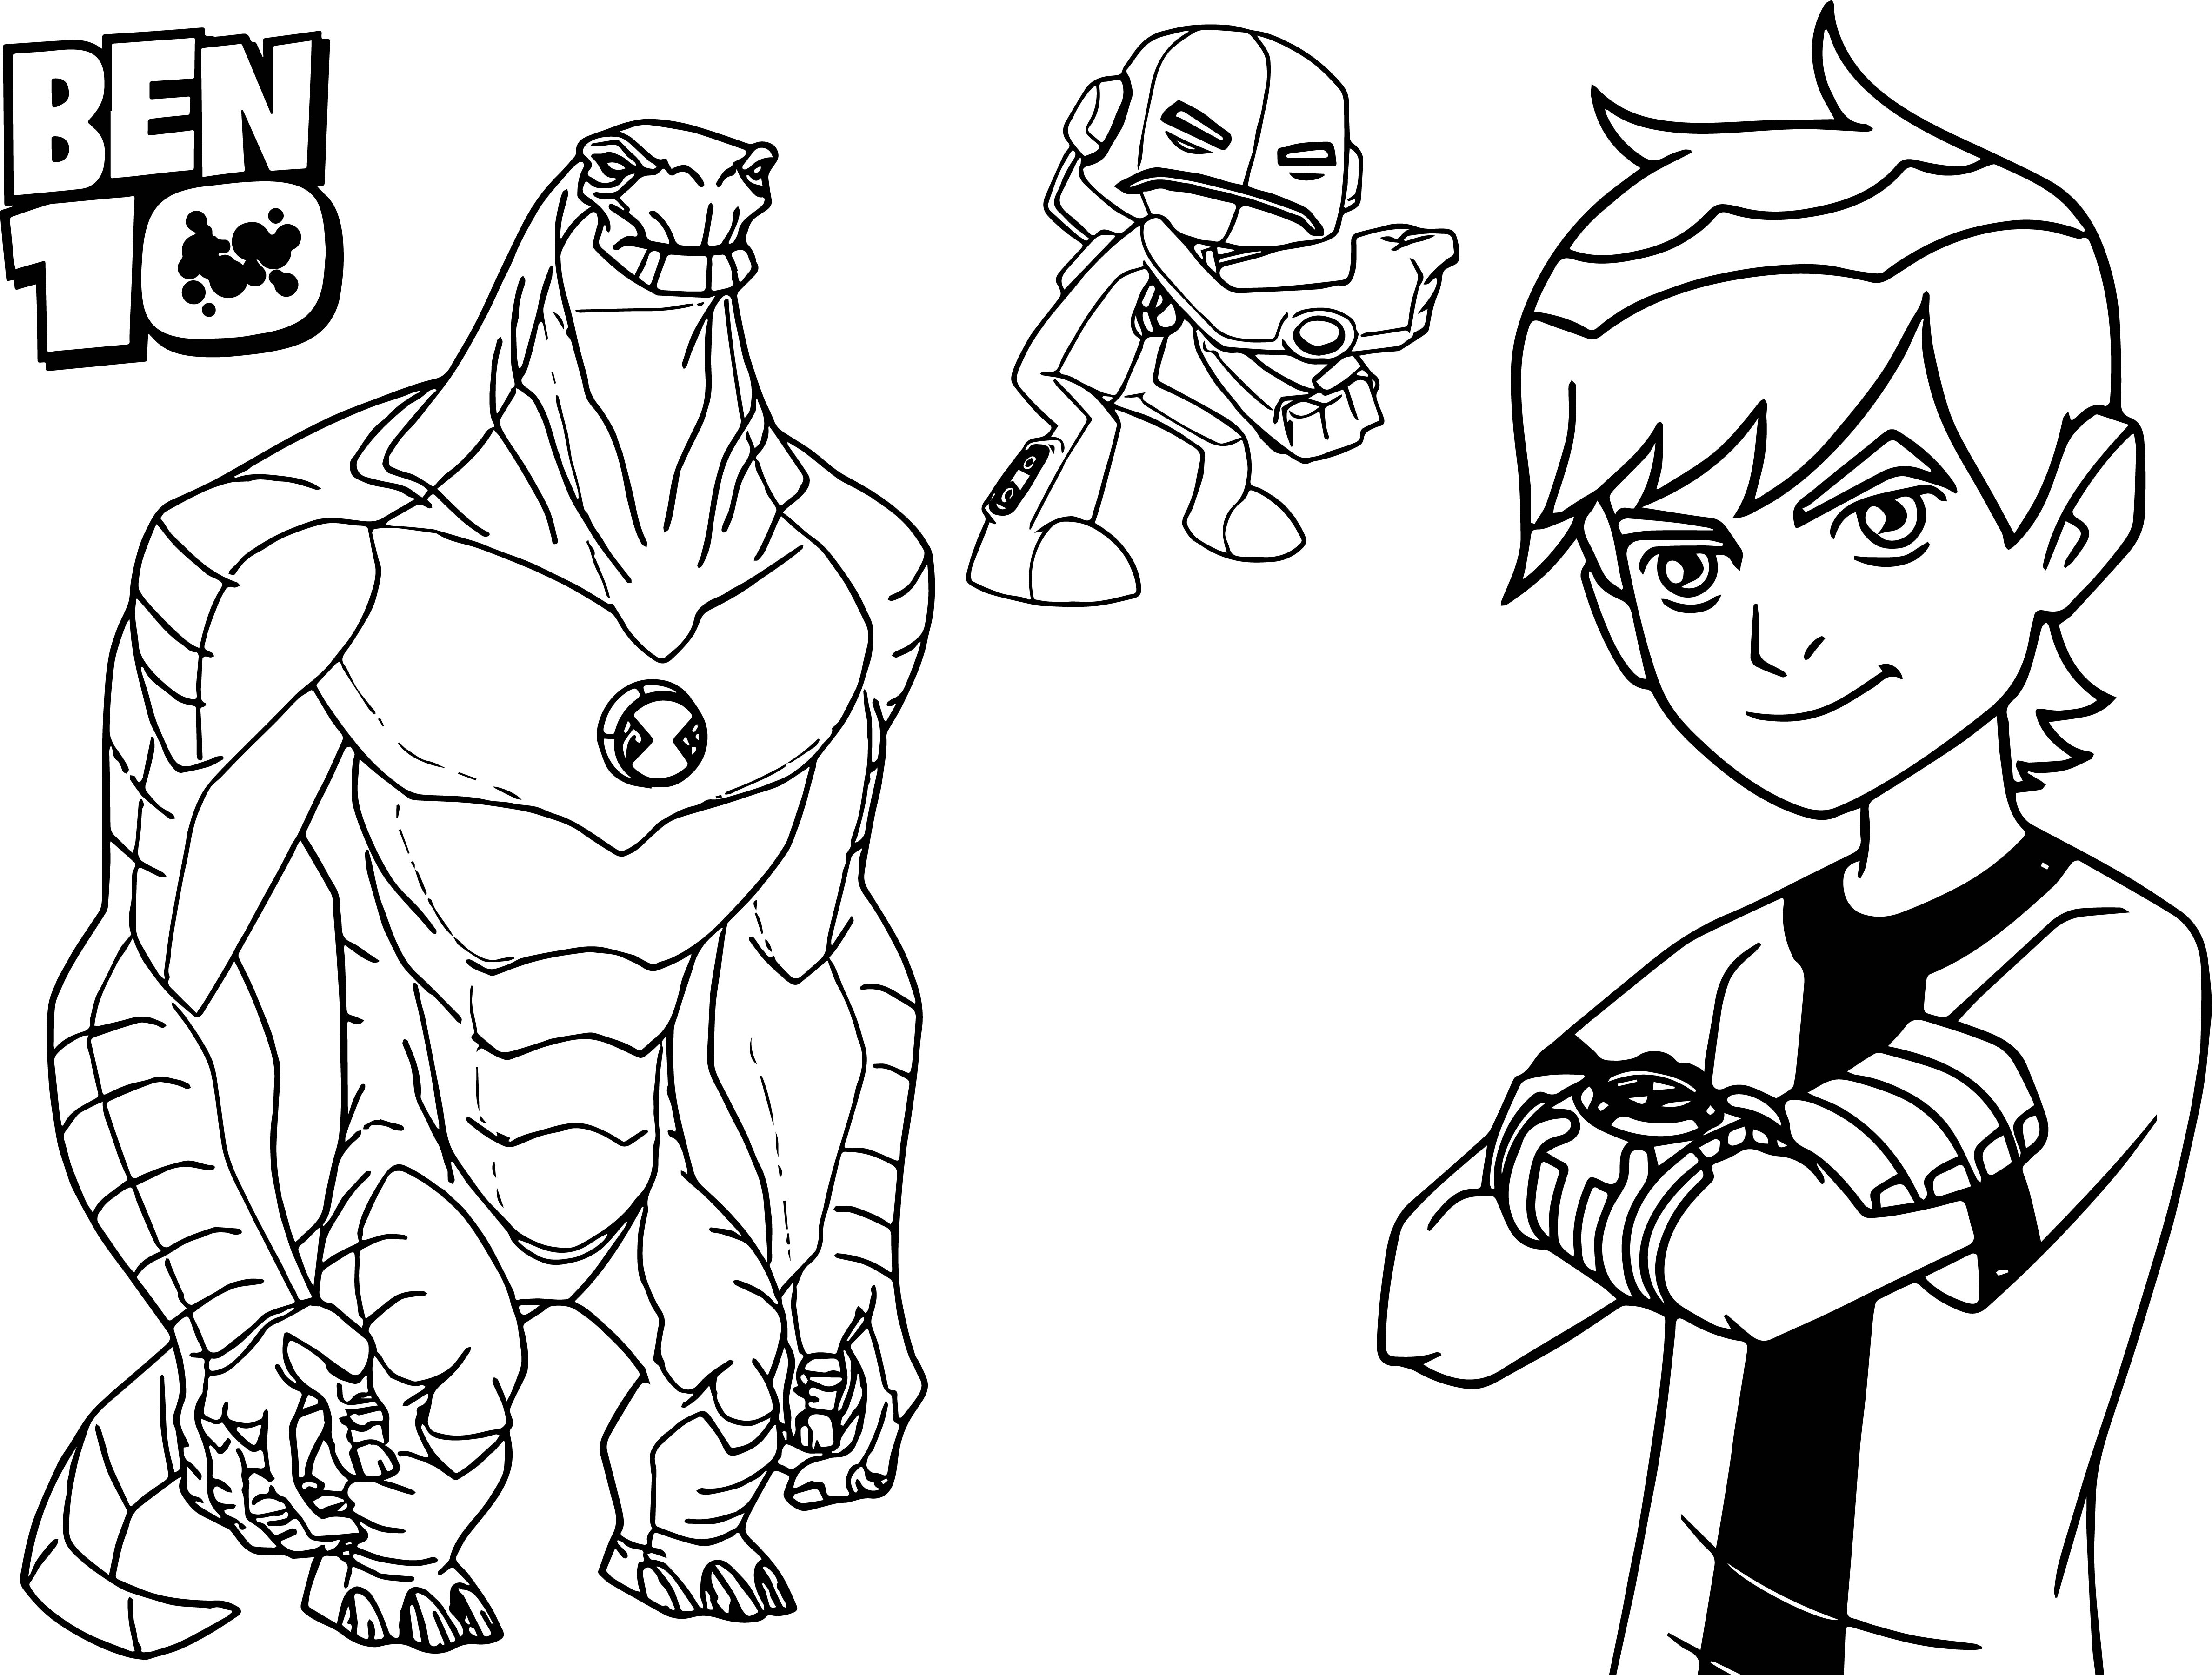 ben 10 coloring page free ben 10 coloring pages page coloring 10 ben